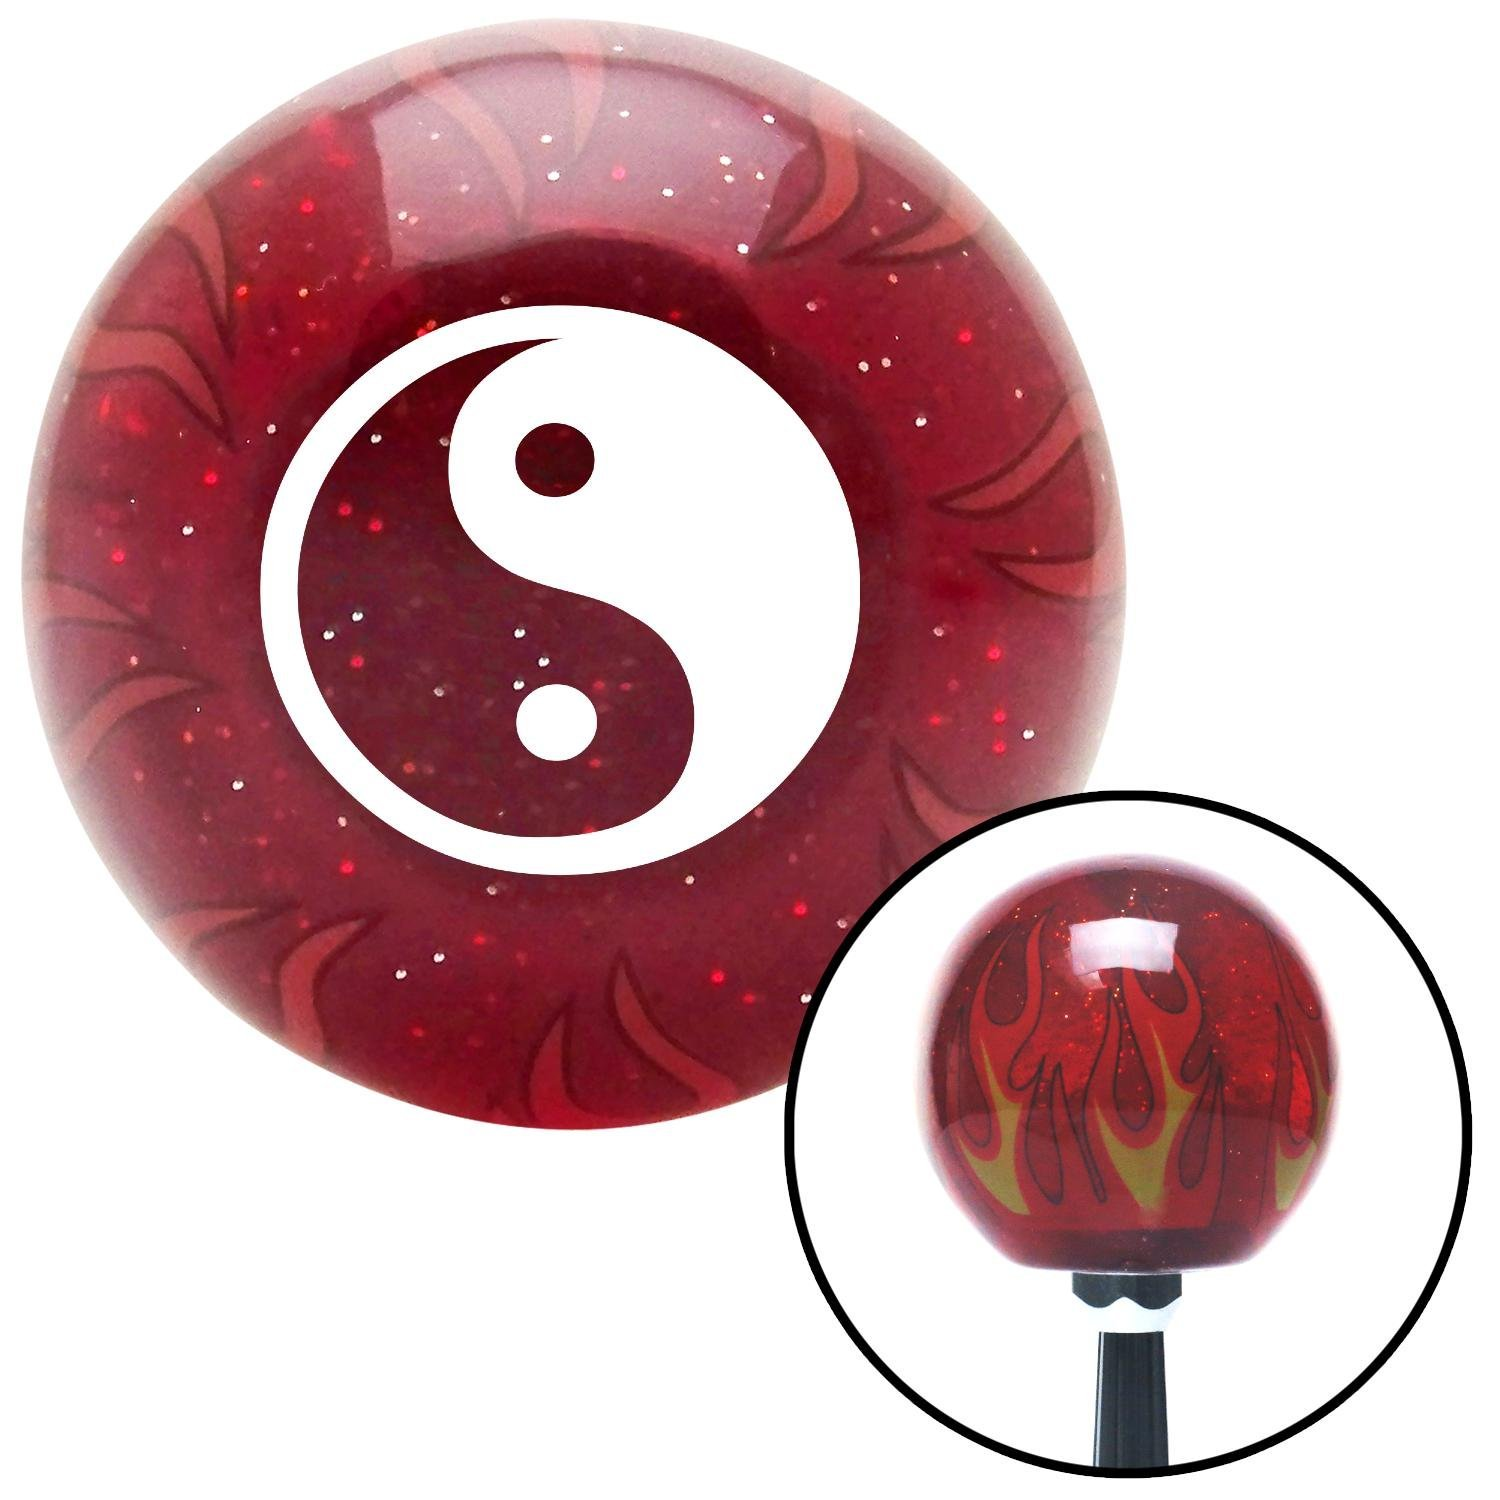 American Shifter 239914 Red Flame Metal Flake Shift Knob with M16 x 1.5 Insert White Yin /& Yang